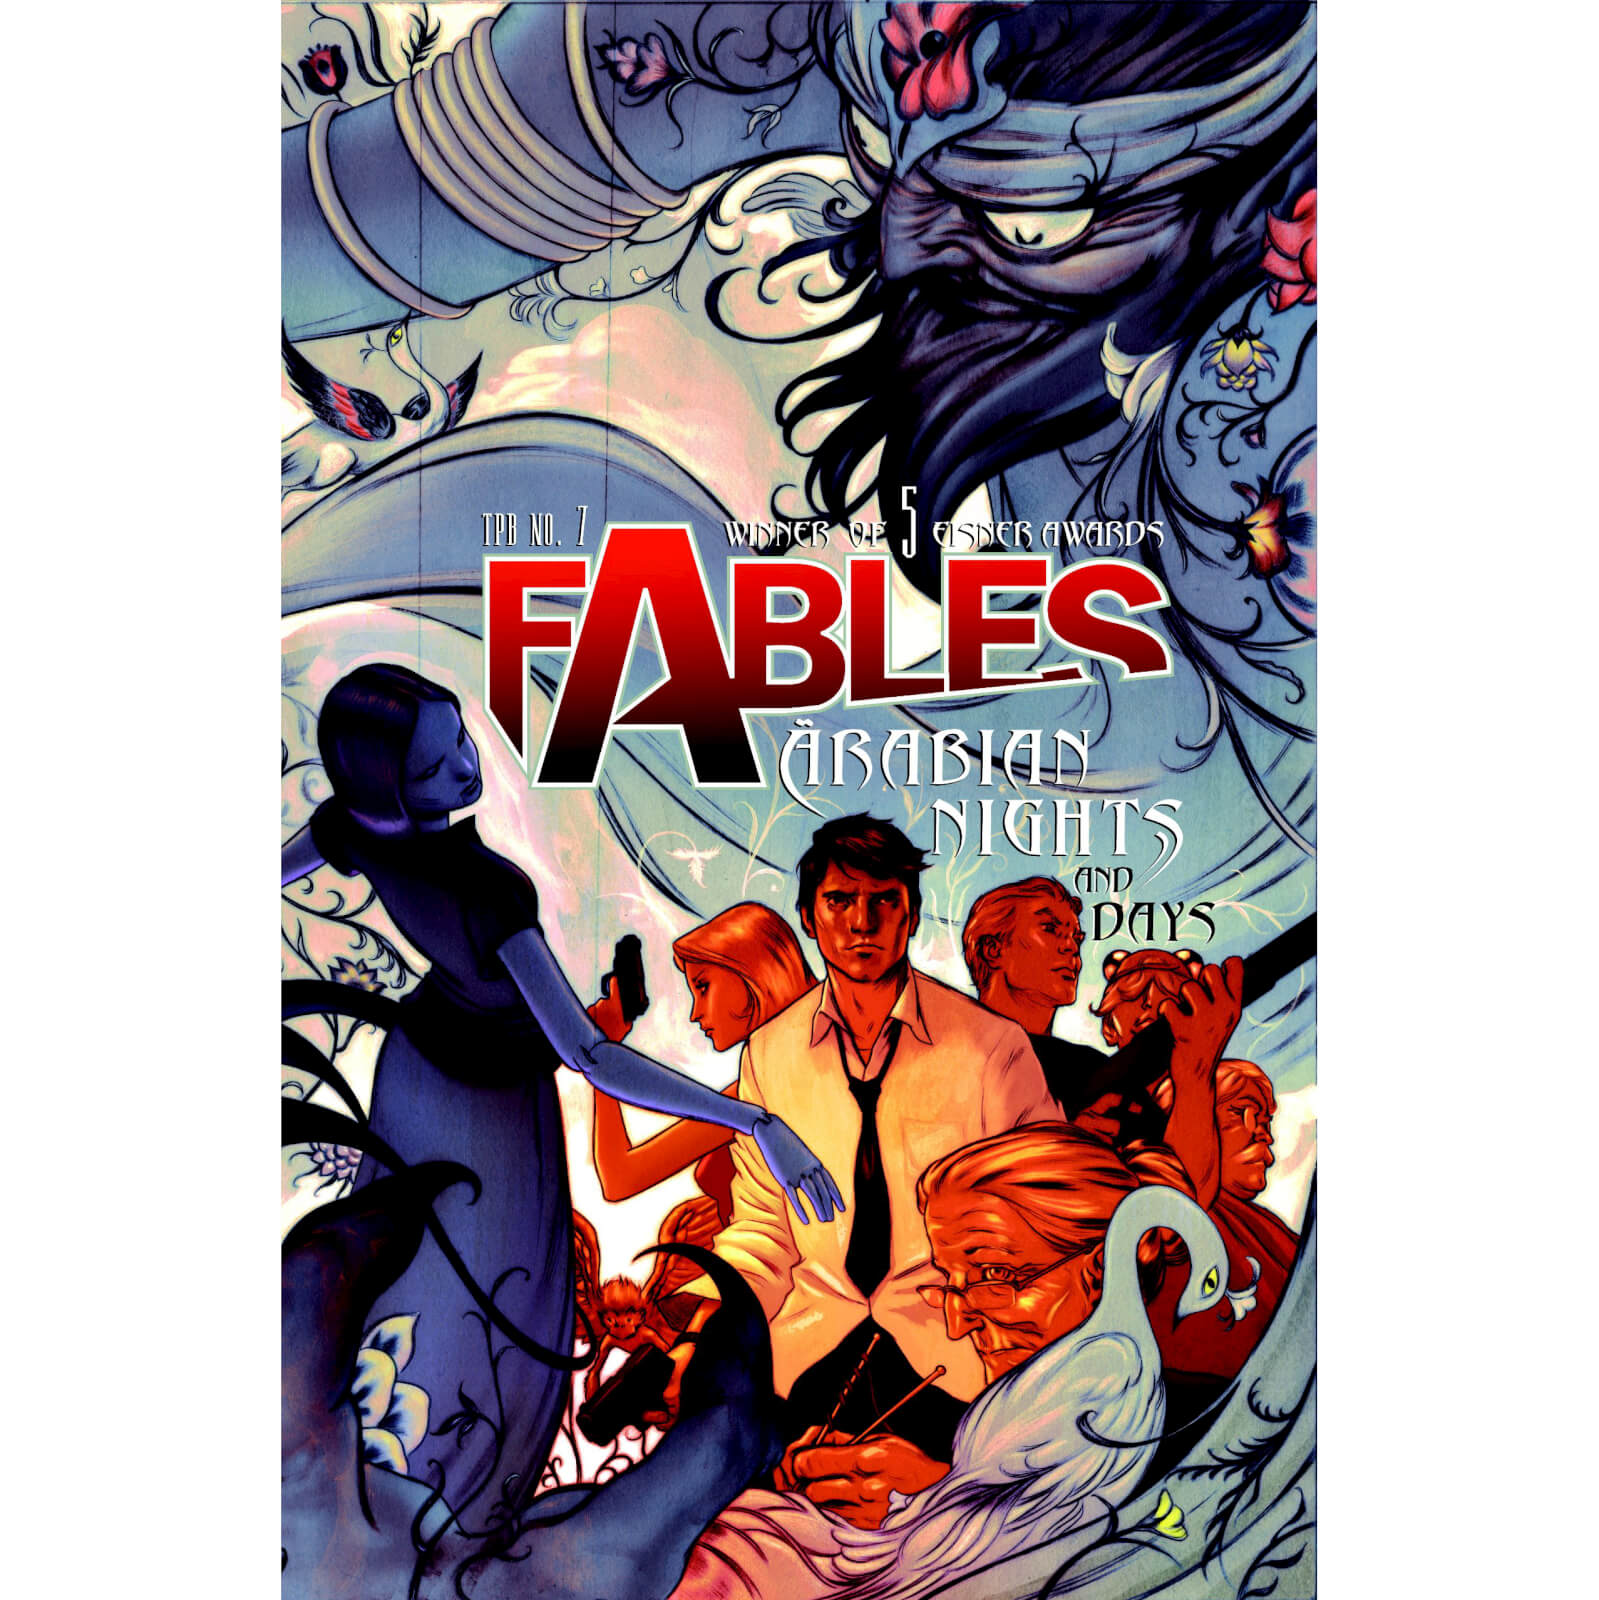 Fables: Arabian Nights and Days - Volume 7 Graphic Novel